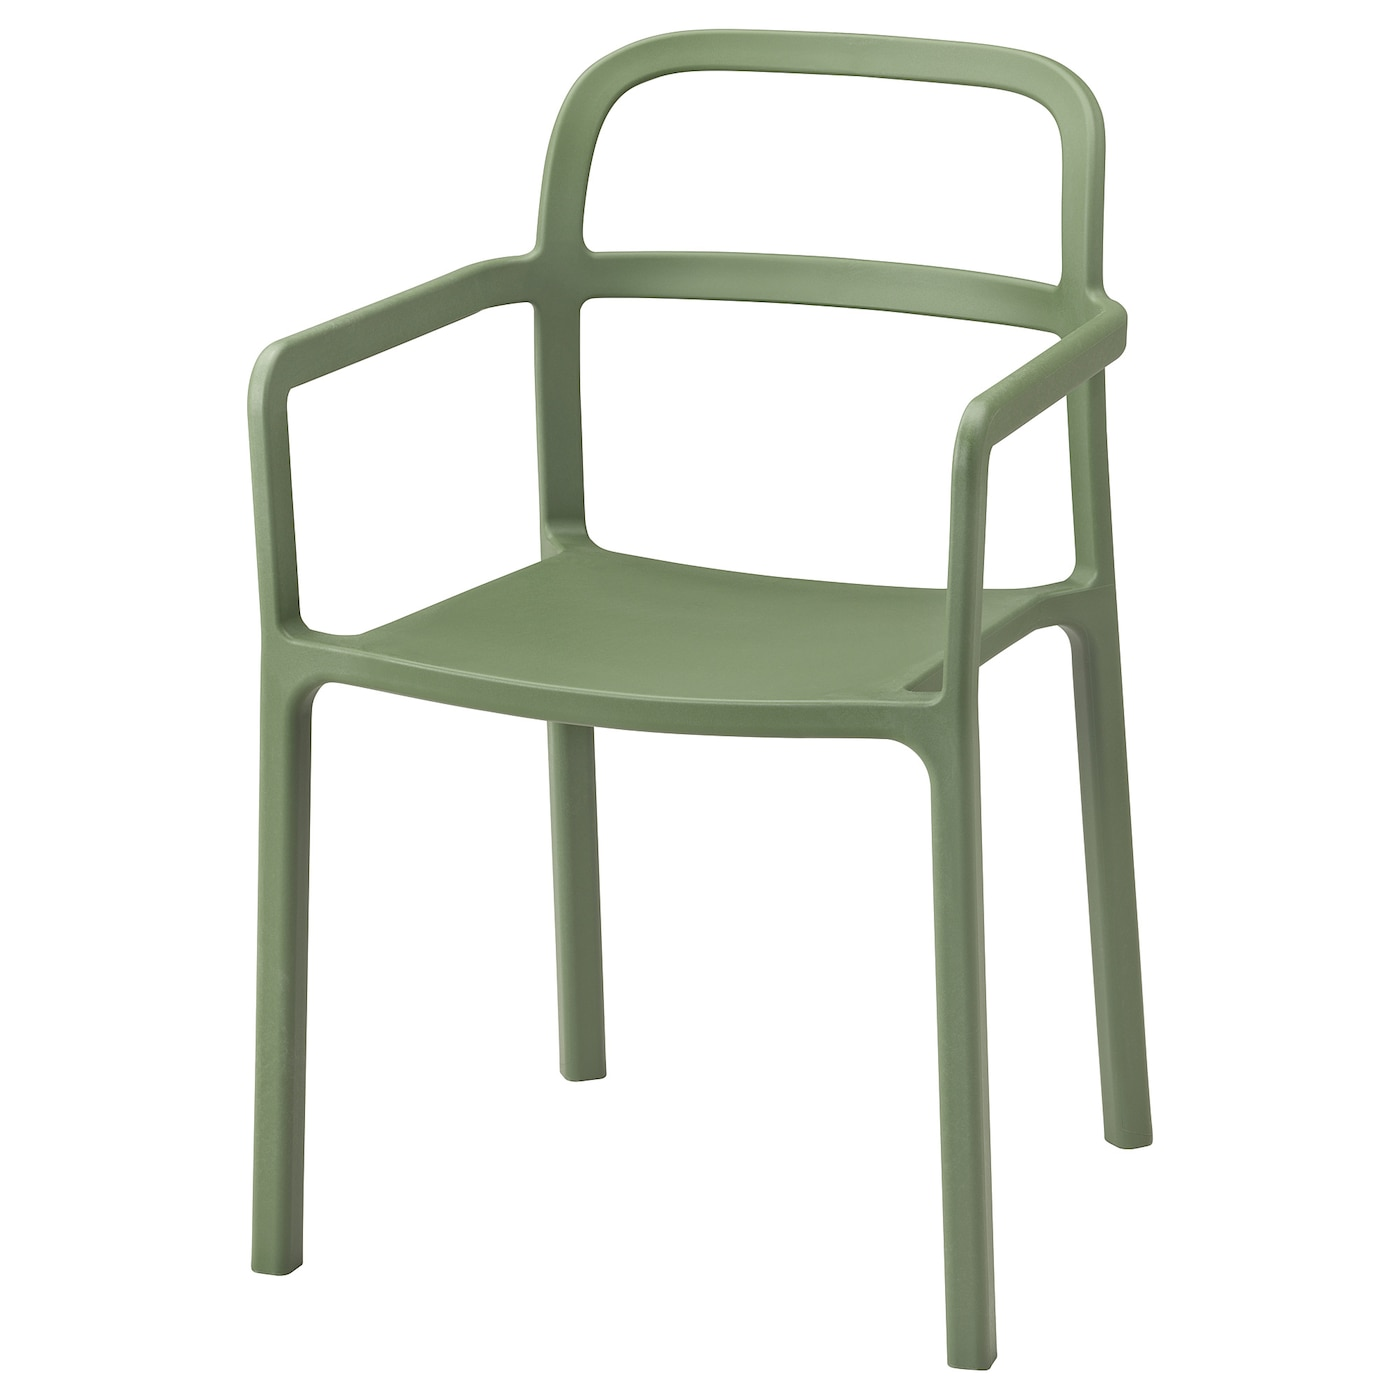 Ypperlig chair with armrests in outdoor green ikea - Sedie colorate ikea ...